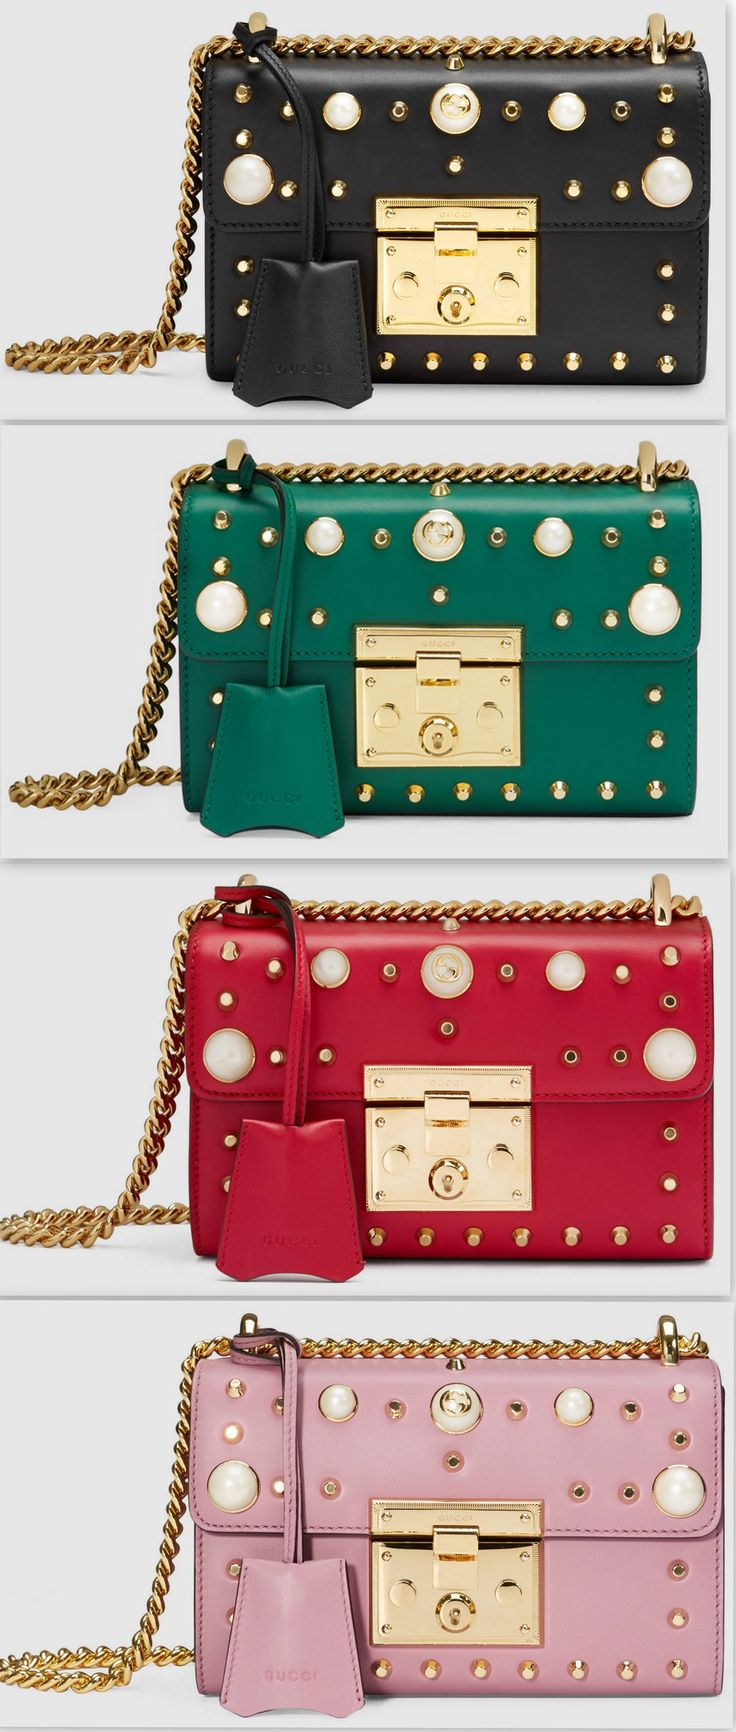 Padlock Pearl Studded Leather Shoulder Bag - (Various colors to choose from)